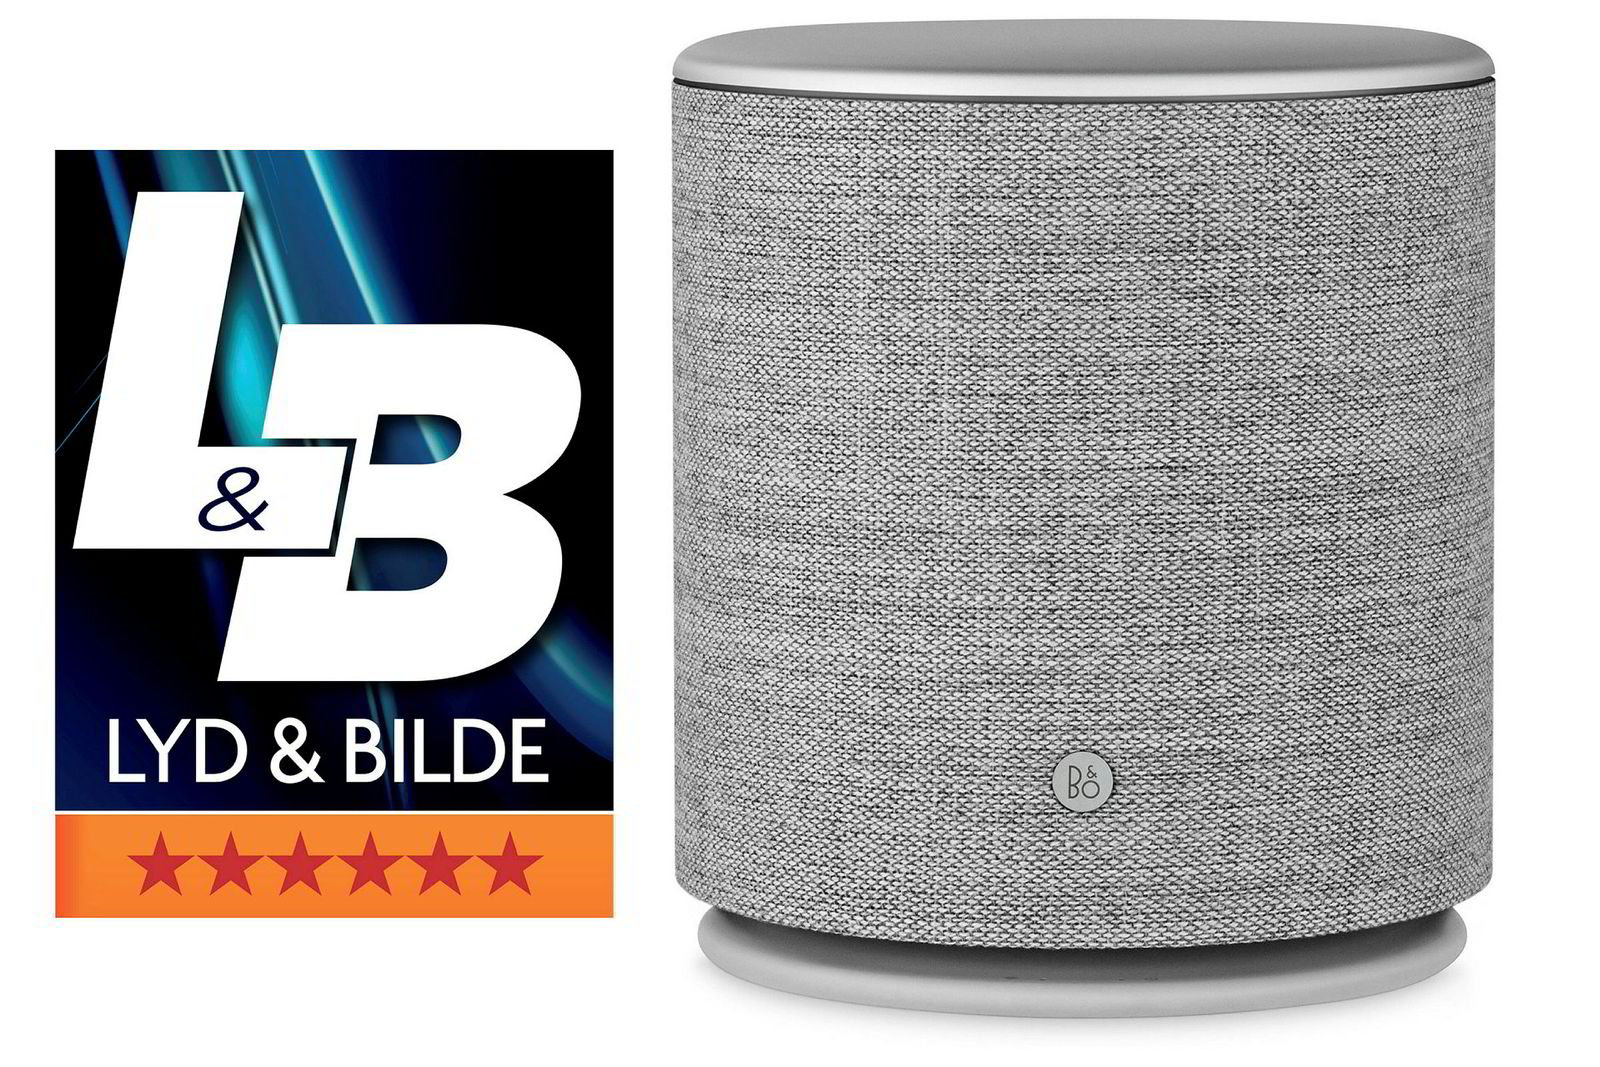 Beoplay M5.